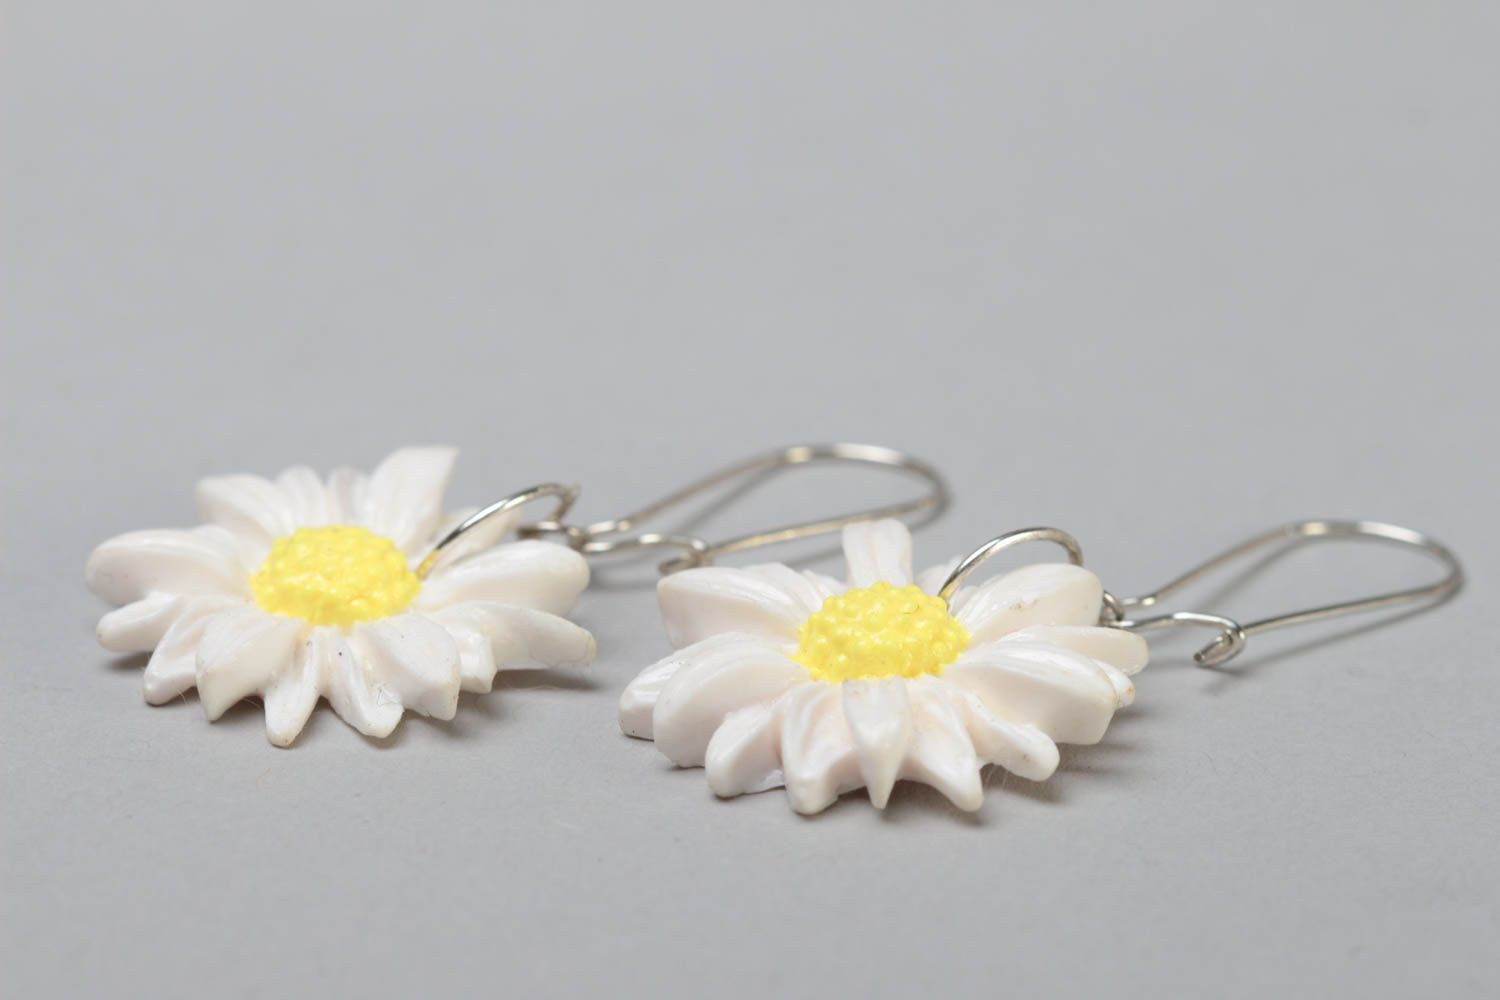 Handmade designer polymer clay dangling earrings with white chamomile flowers photo 3